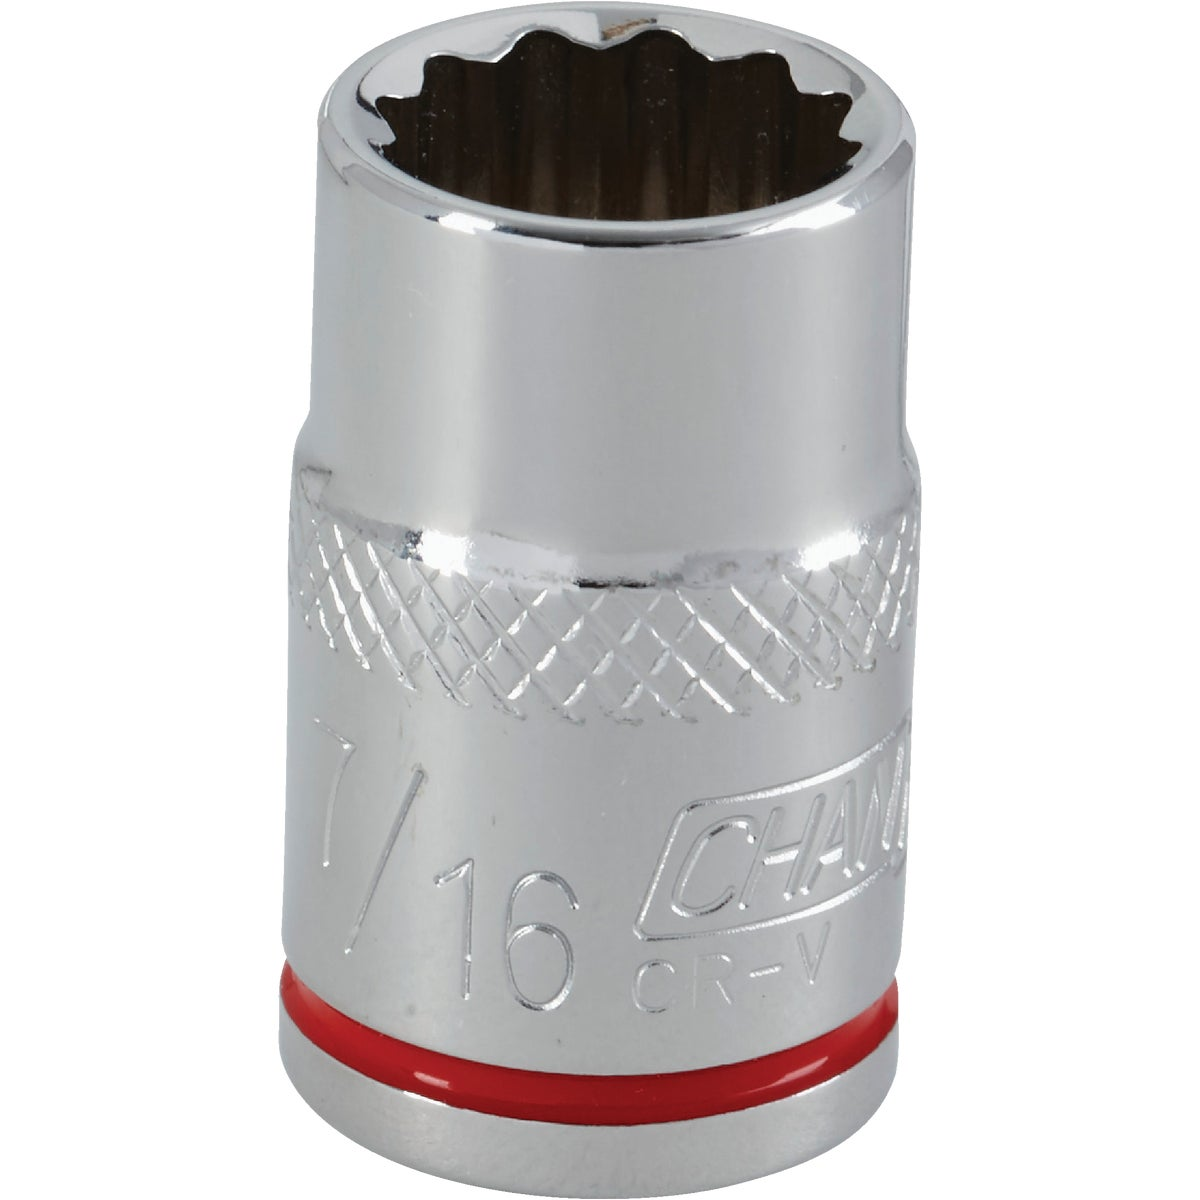 "7/16"" 3/8 DRIVE SOCKET - 305170 by Do it Best"